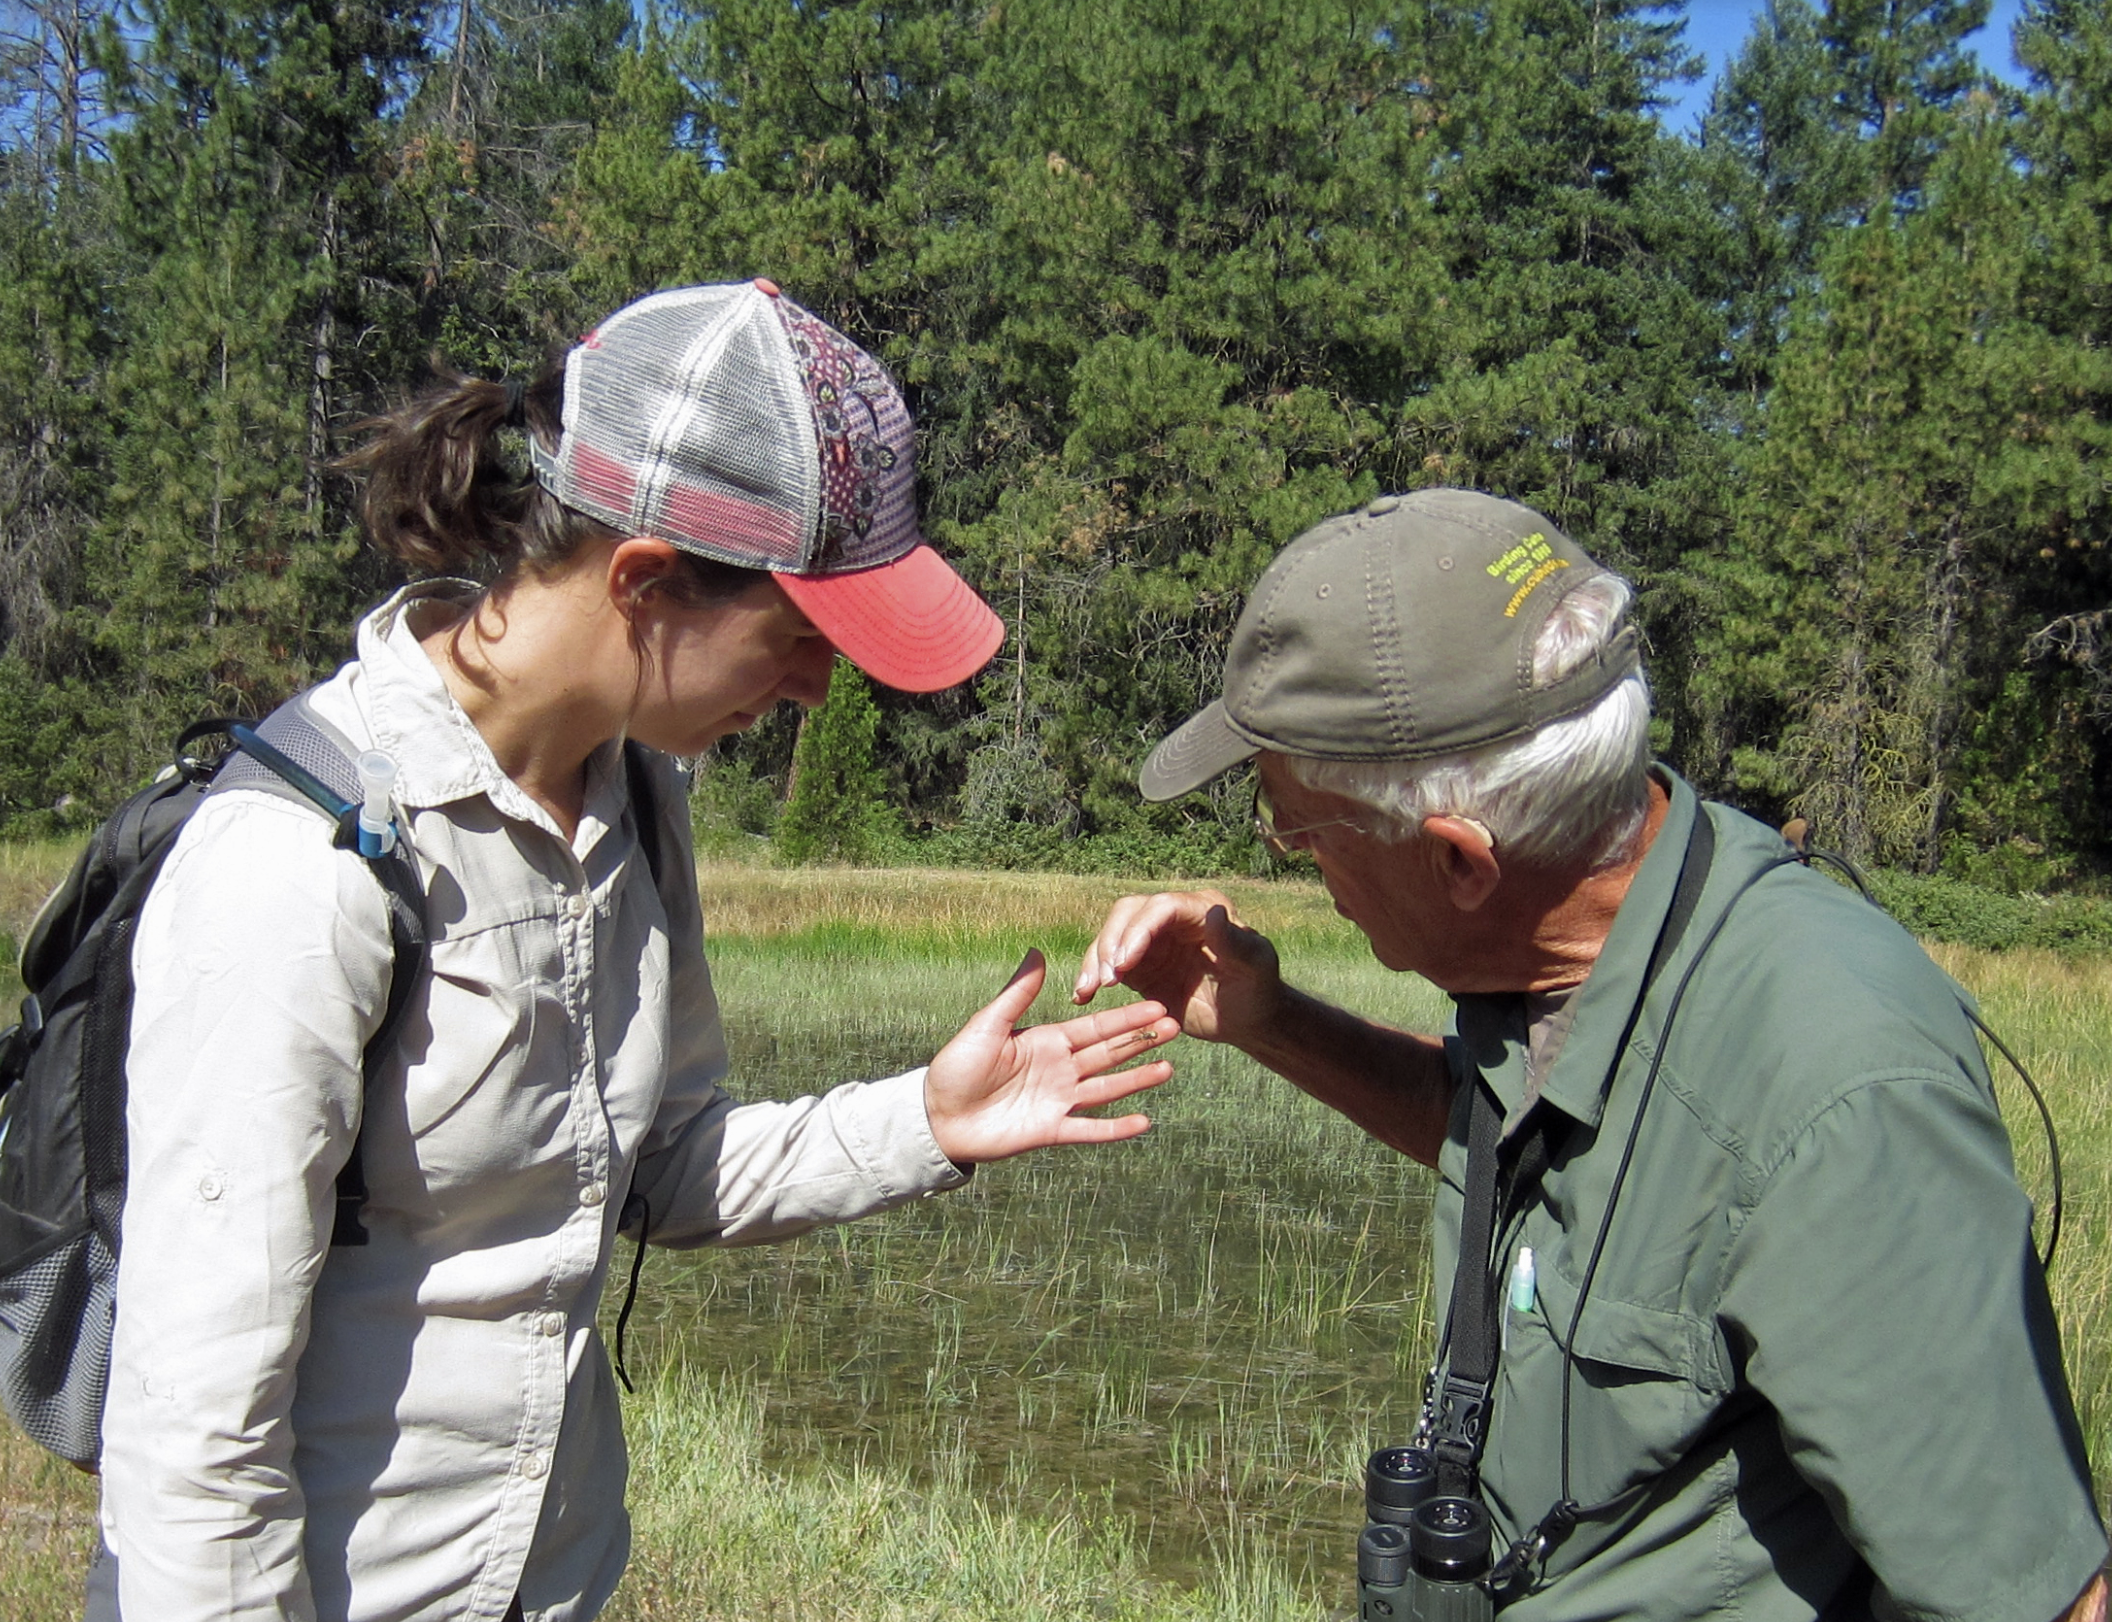 Learning how to identify dragonflies from the experts. Photo by Kristi Reynolds